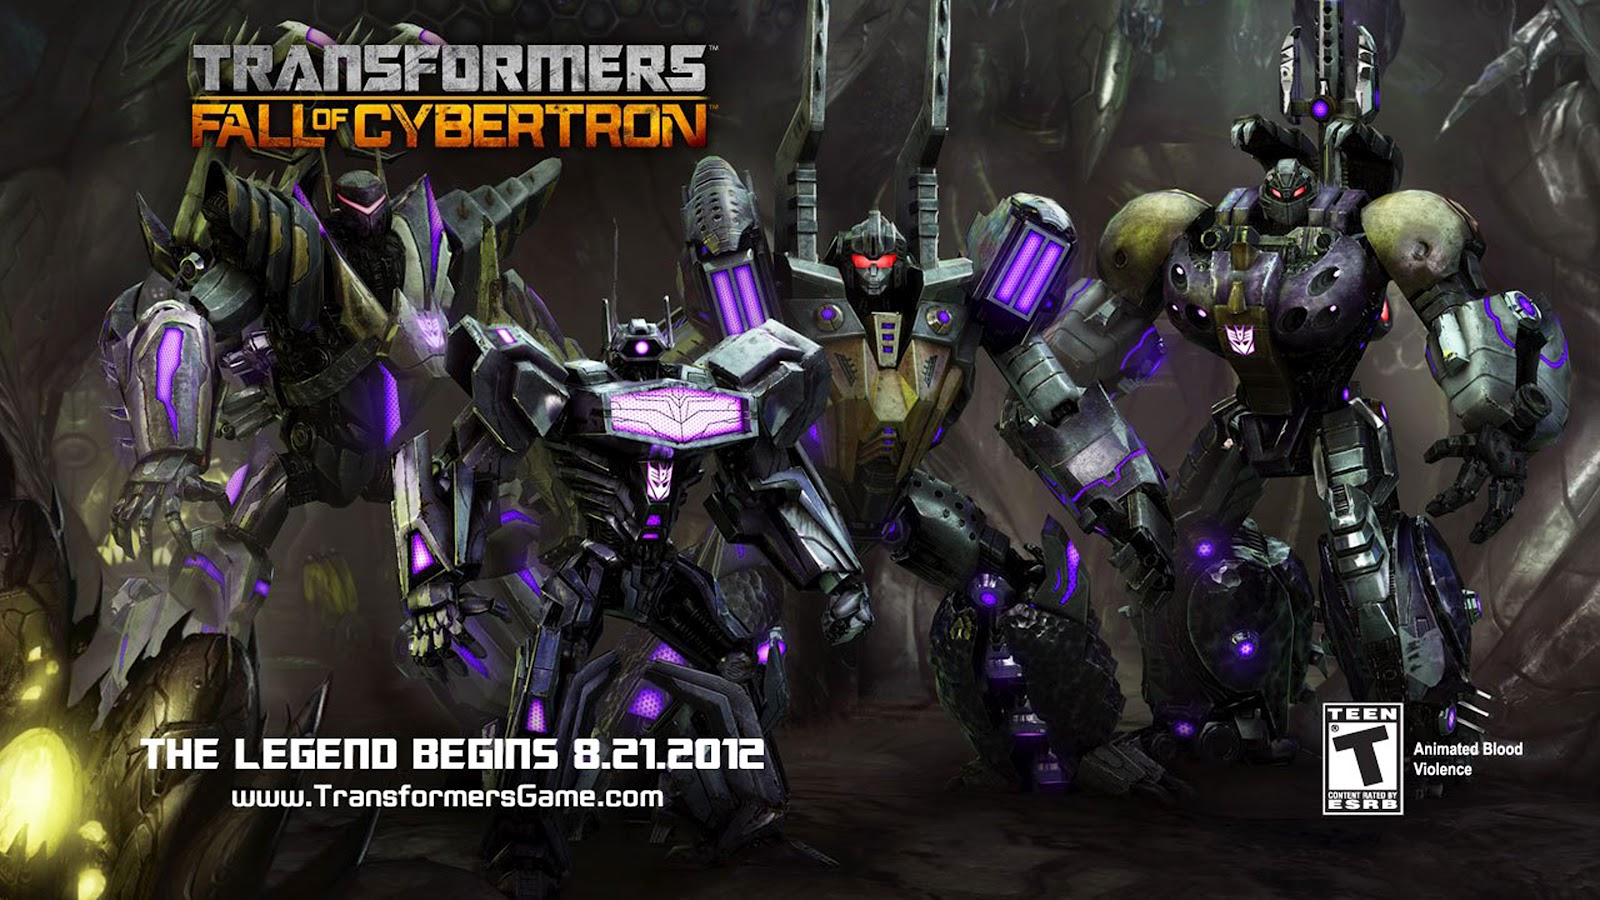 TRANSFORMERS FALL OF CYBERTRON OFFICIAL CONCEPT ART POSTERS 1600x900